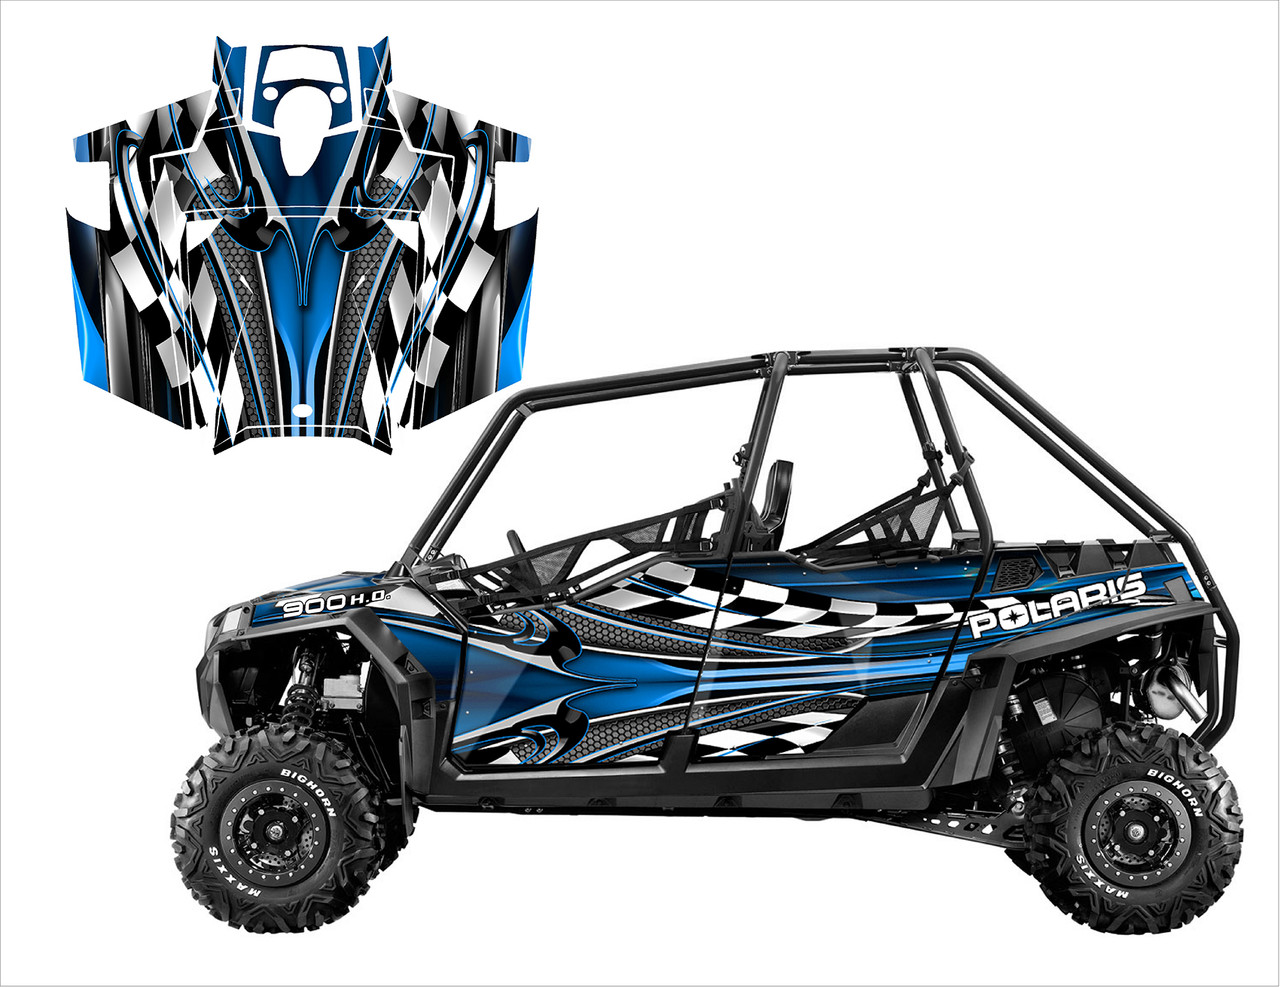 2014 Polaris RZR 4 graphics wrap kit by All Motor Graphics